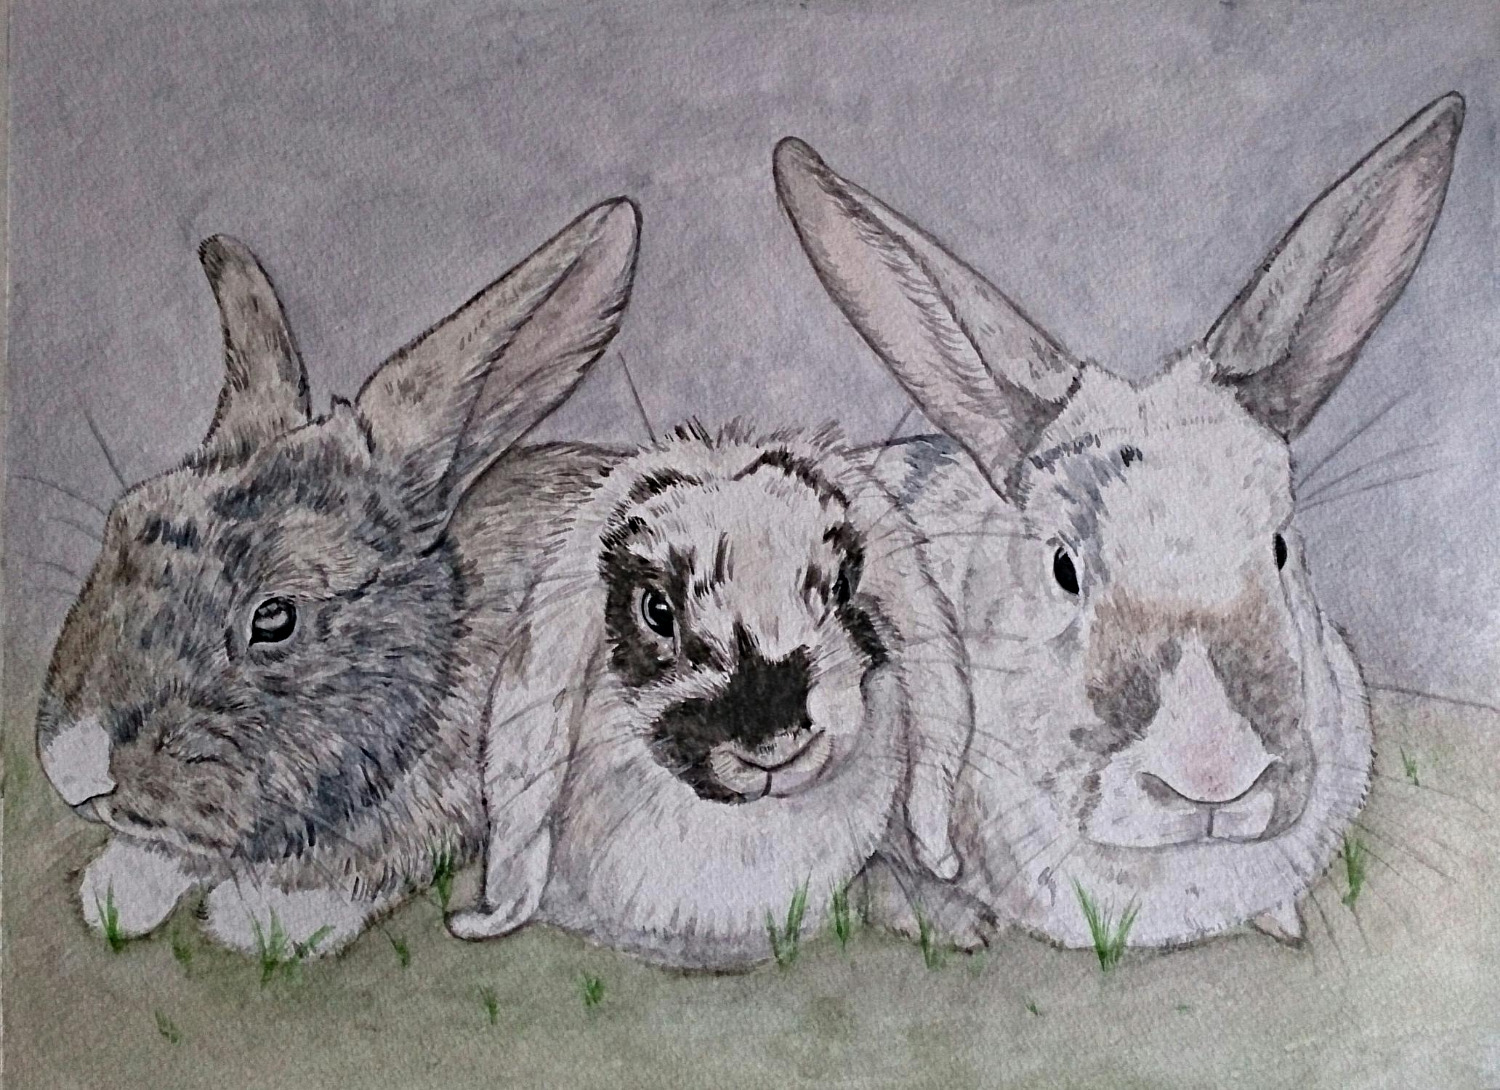 Three rabits / bunnies